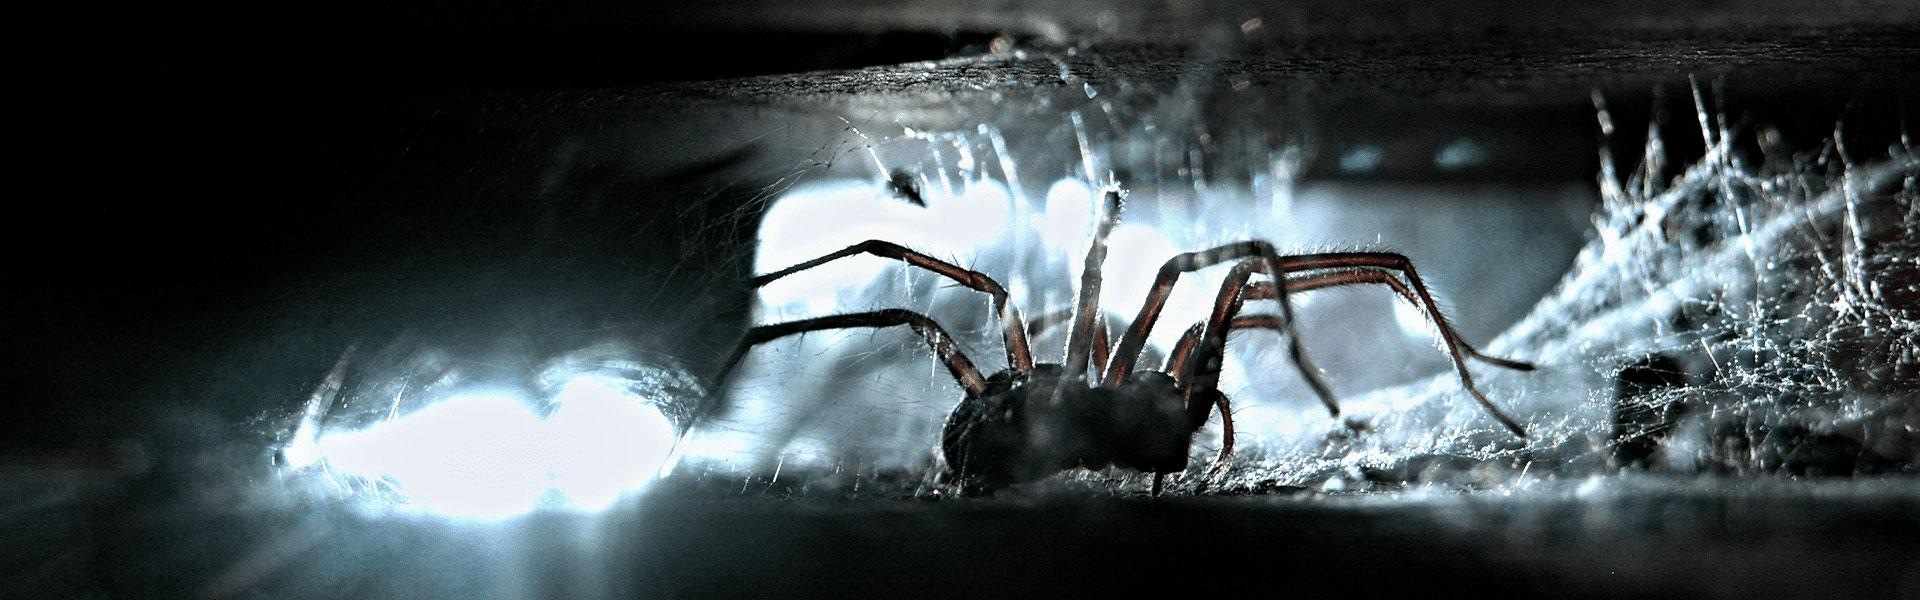 a house spider crawling in web